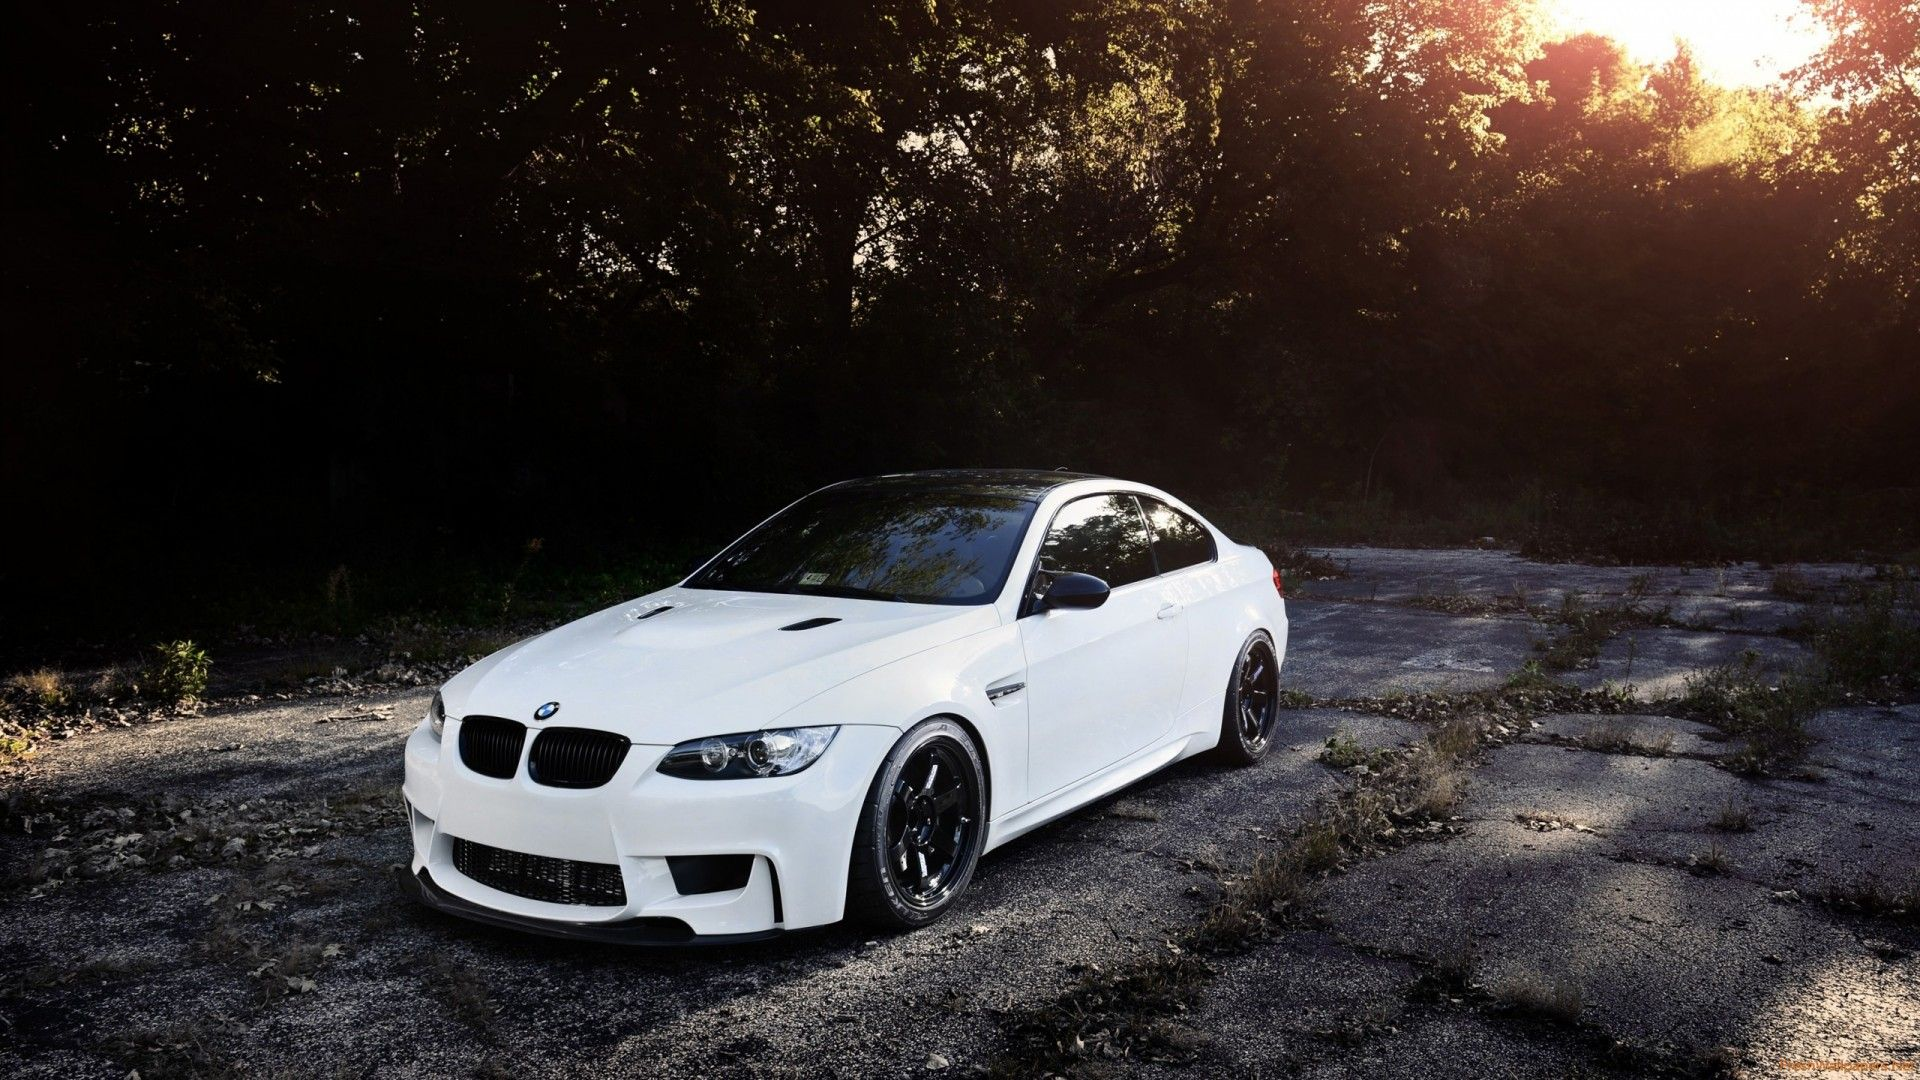 bmw m3 wallpaper 21 - [1920x1080]